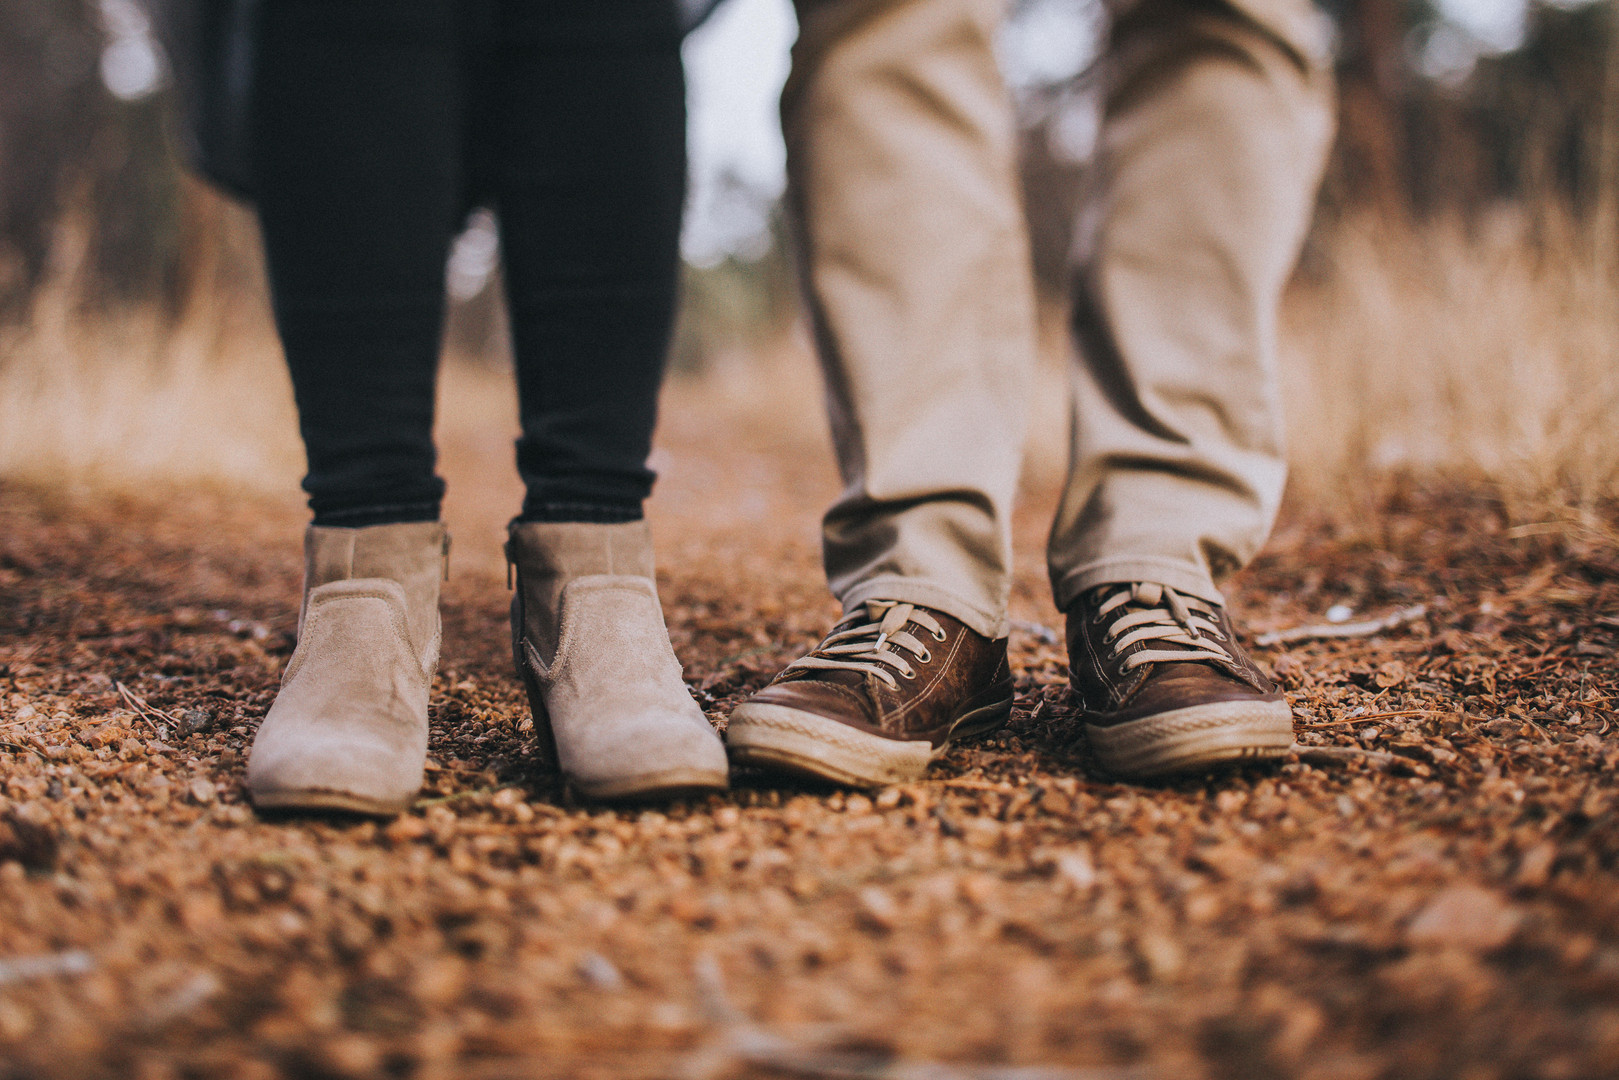 Am close up of a man and woman's shoes at a Cheyenne Mountain State Park engagement session